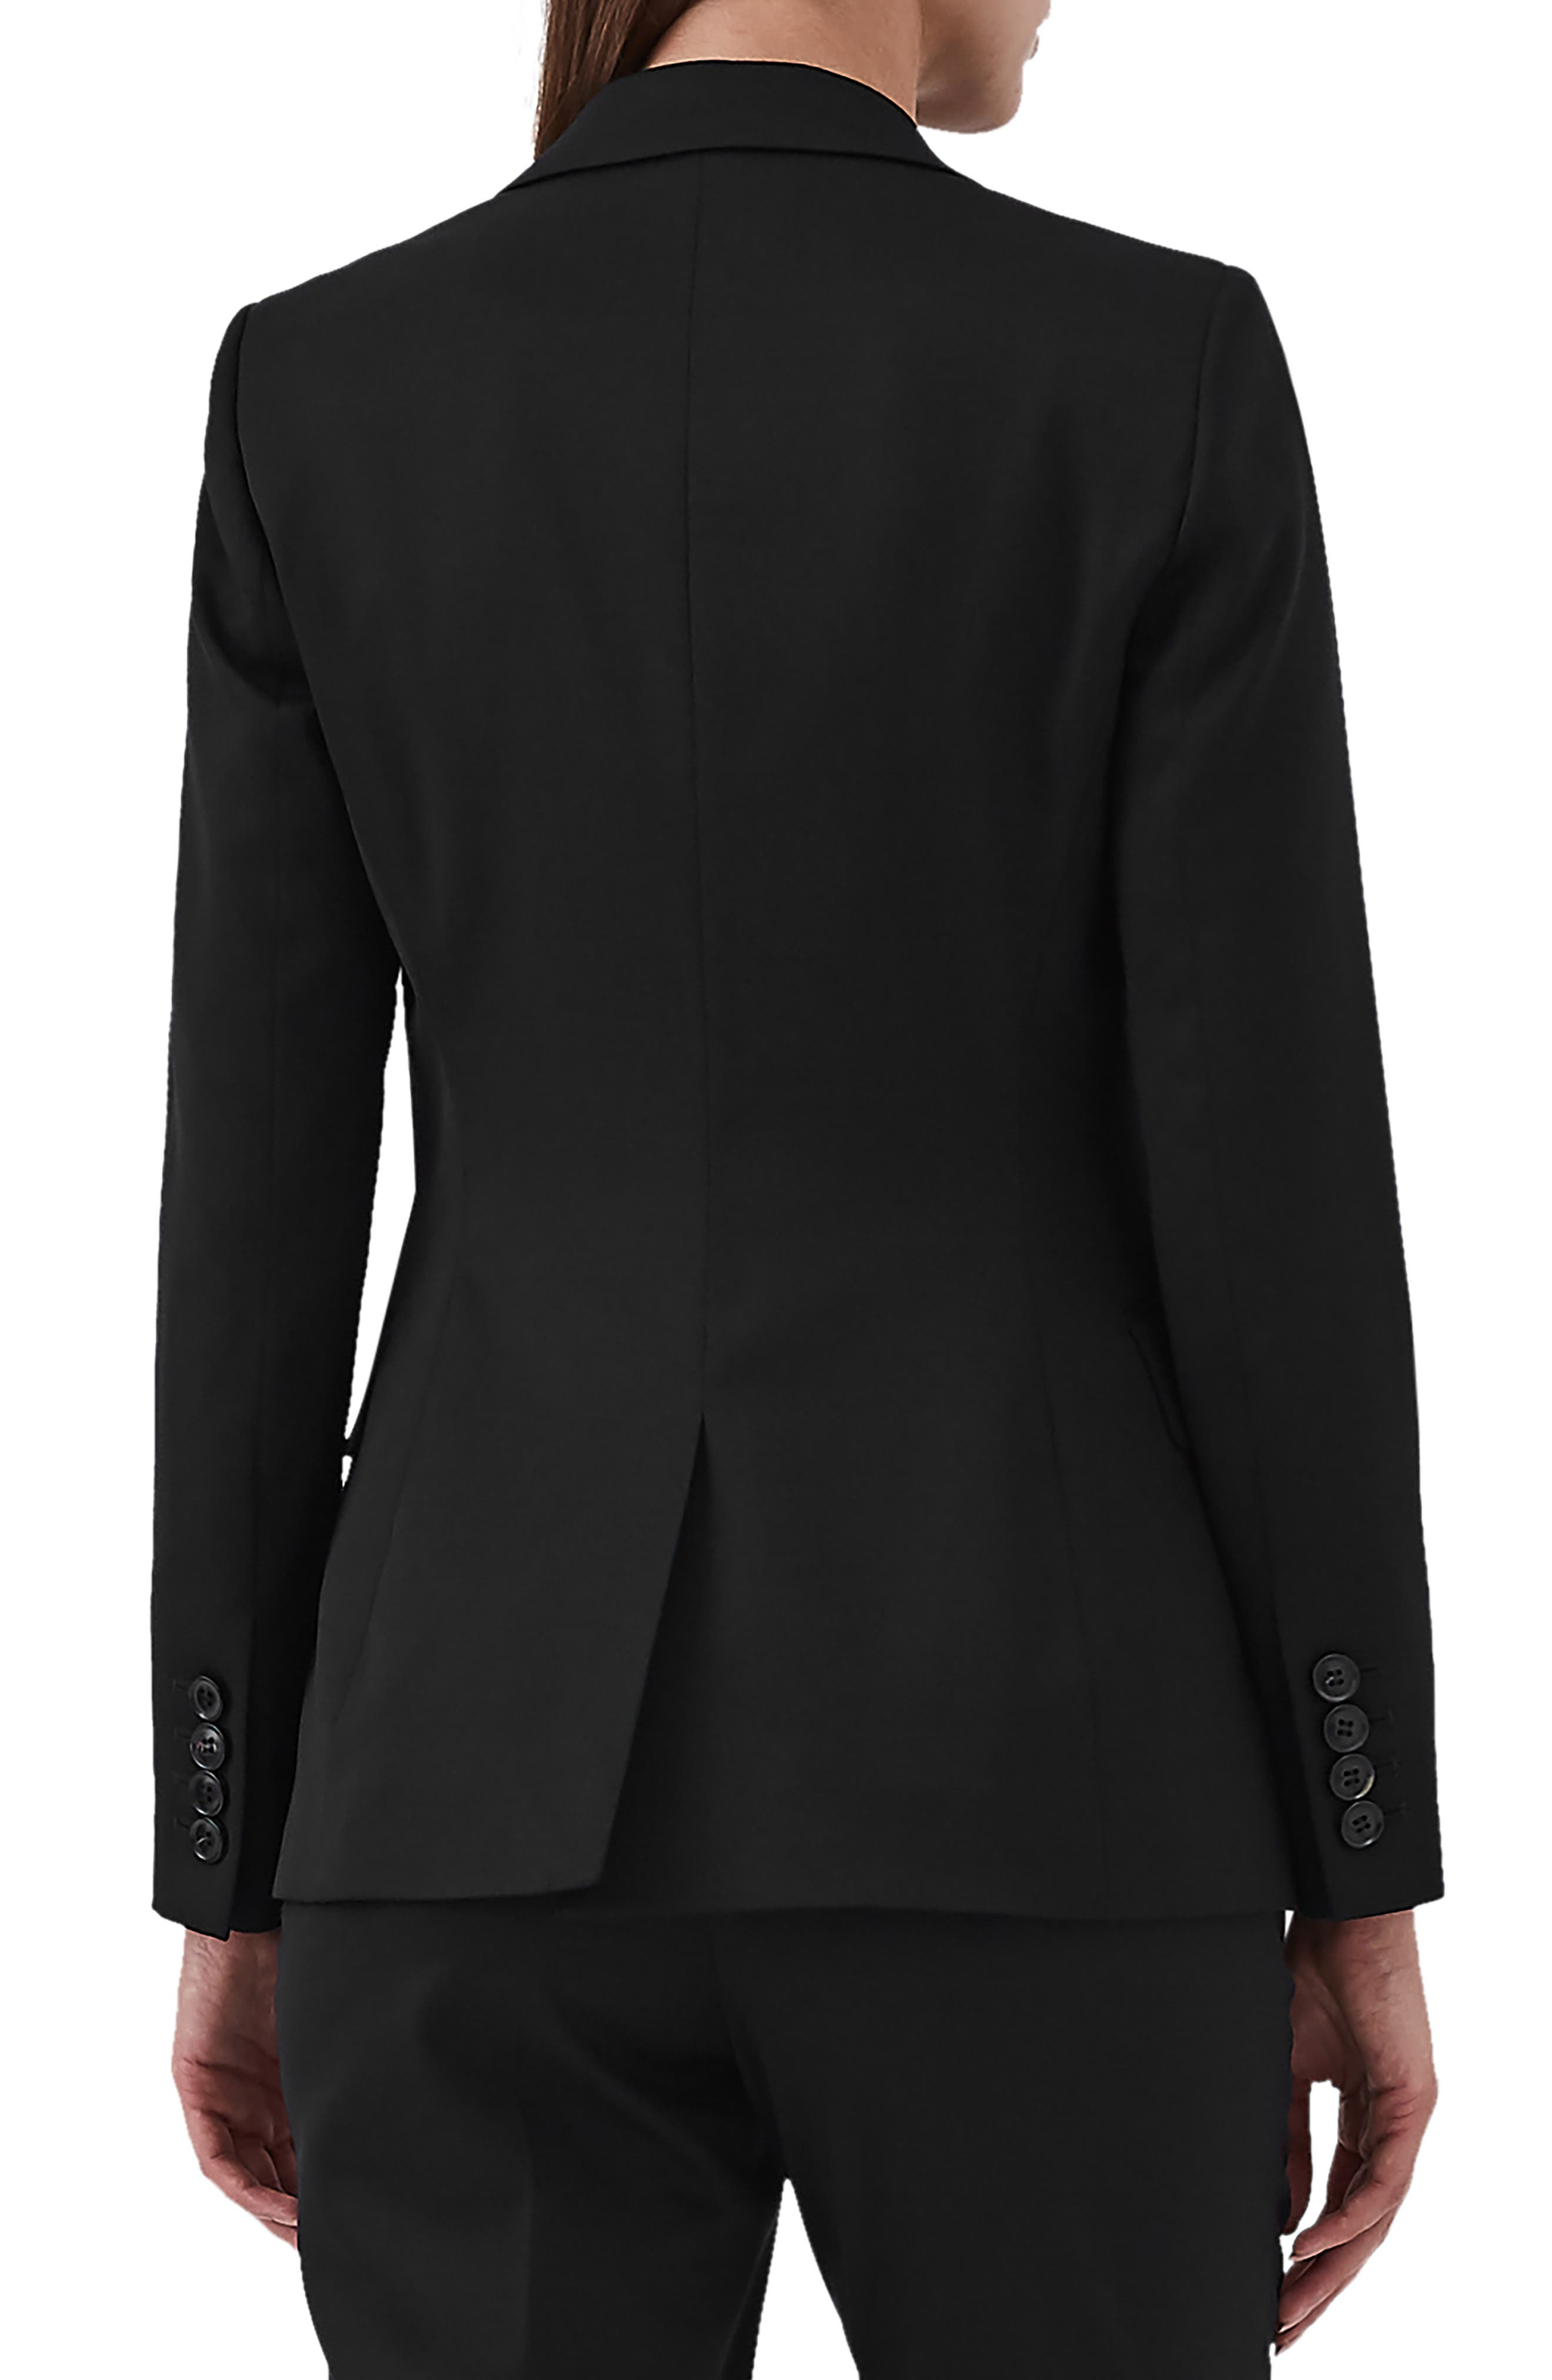 Harper Slim Fit Jacket,                             Alternate thumbnail 2, color,                             BLACK